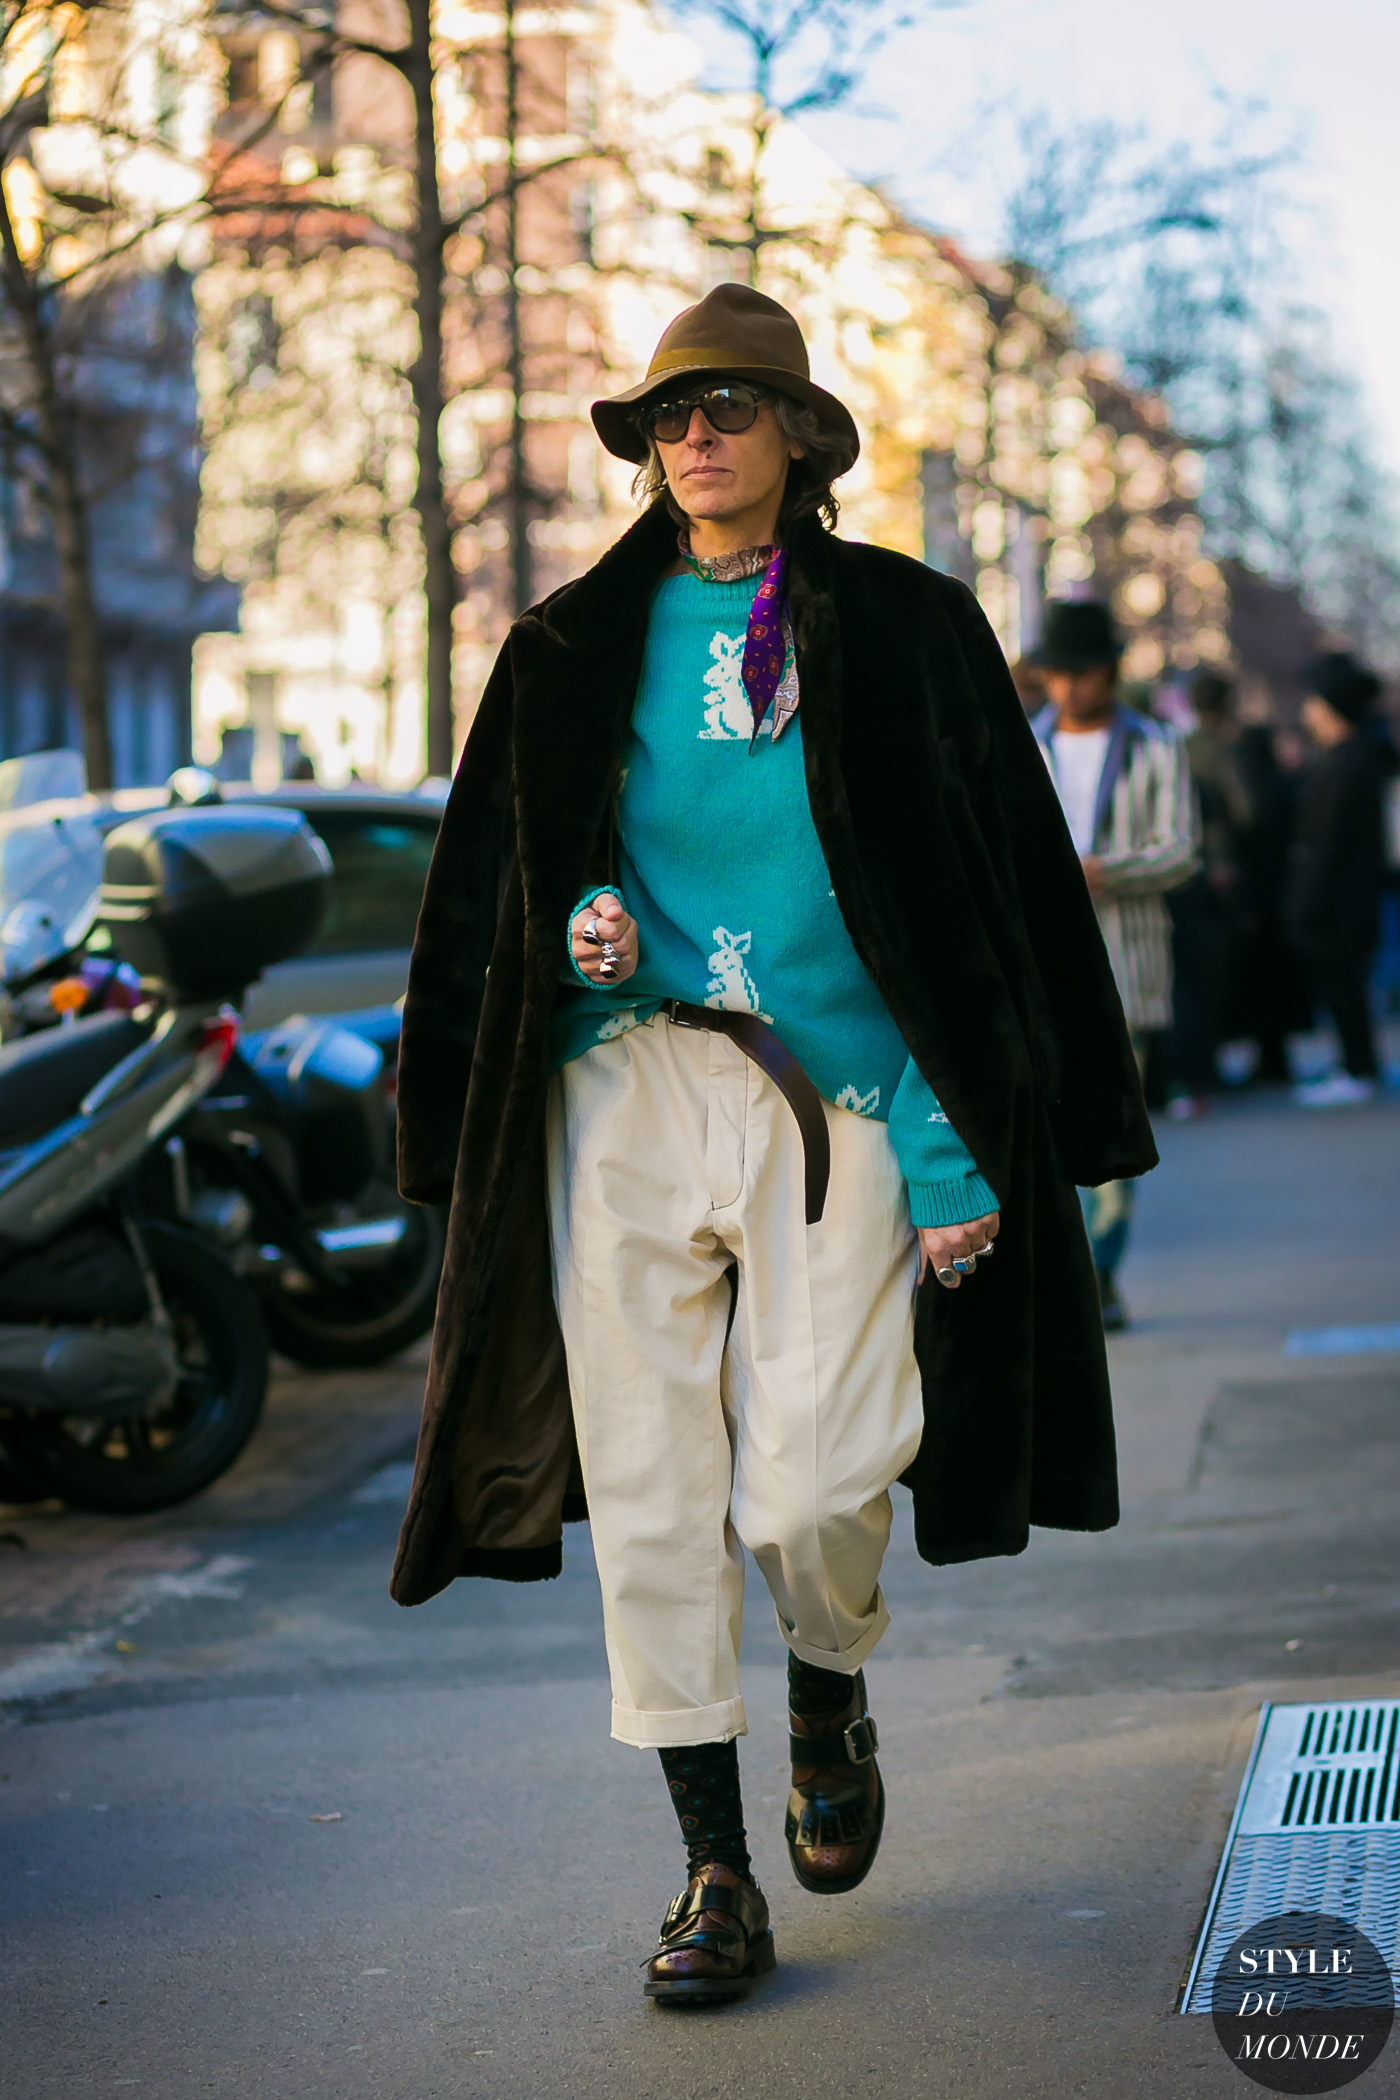 Ana Gimeno Brugada by STYLEDUMONDE Street Style Fashion Photography